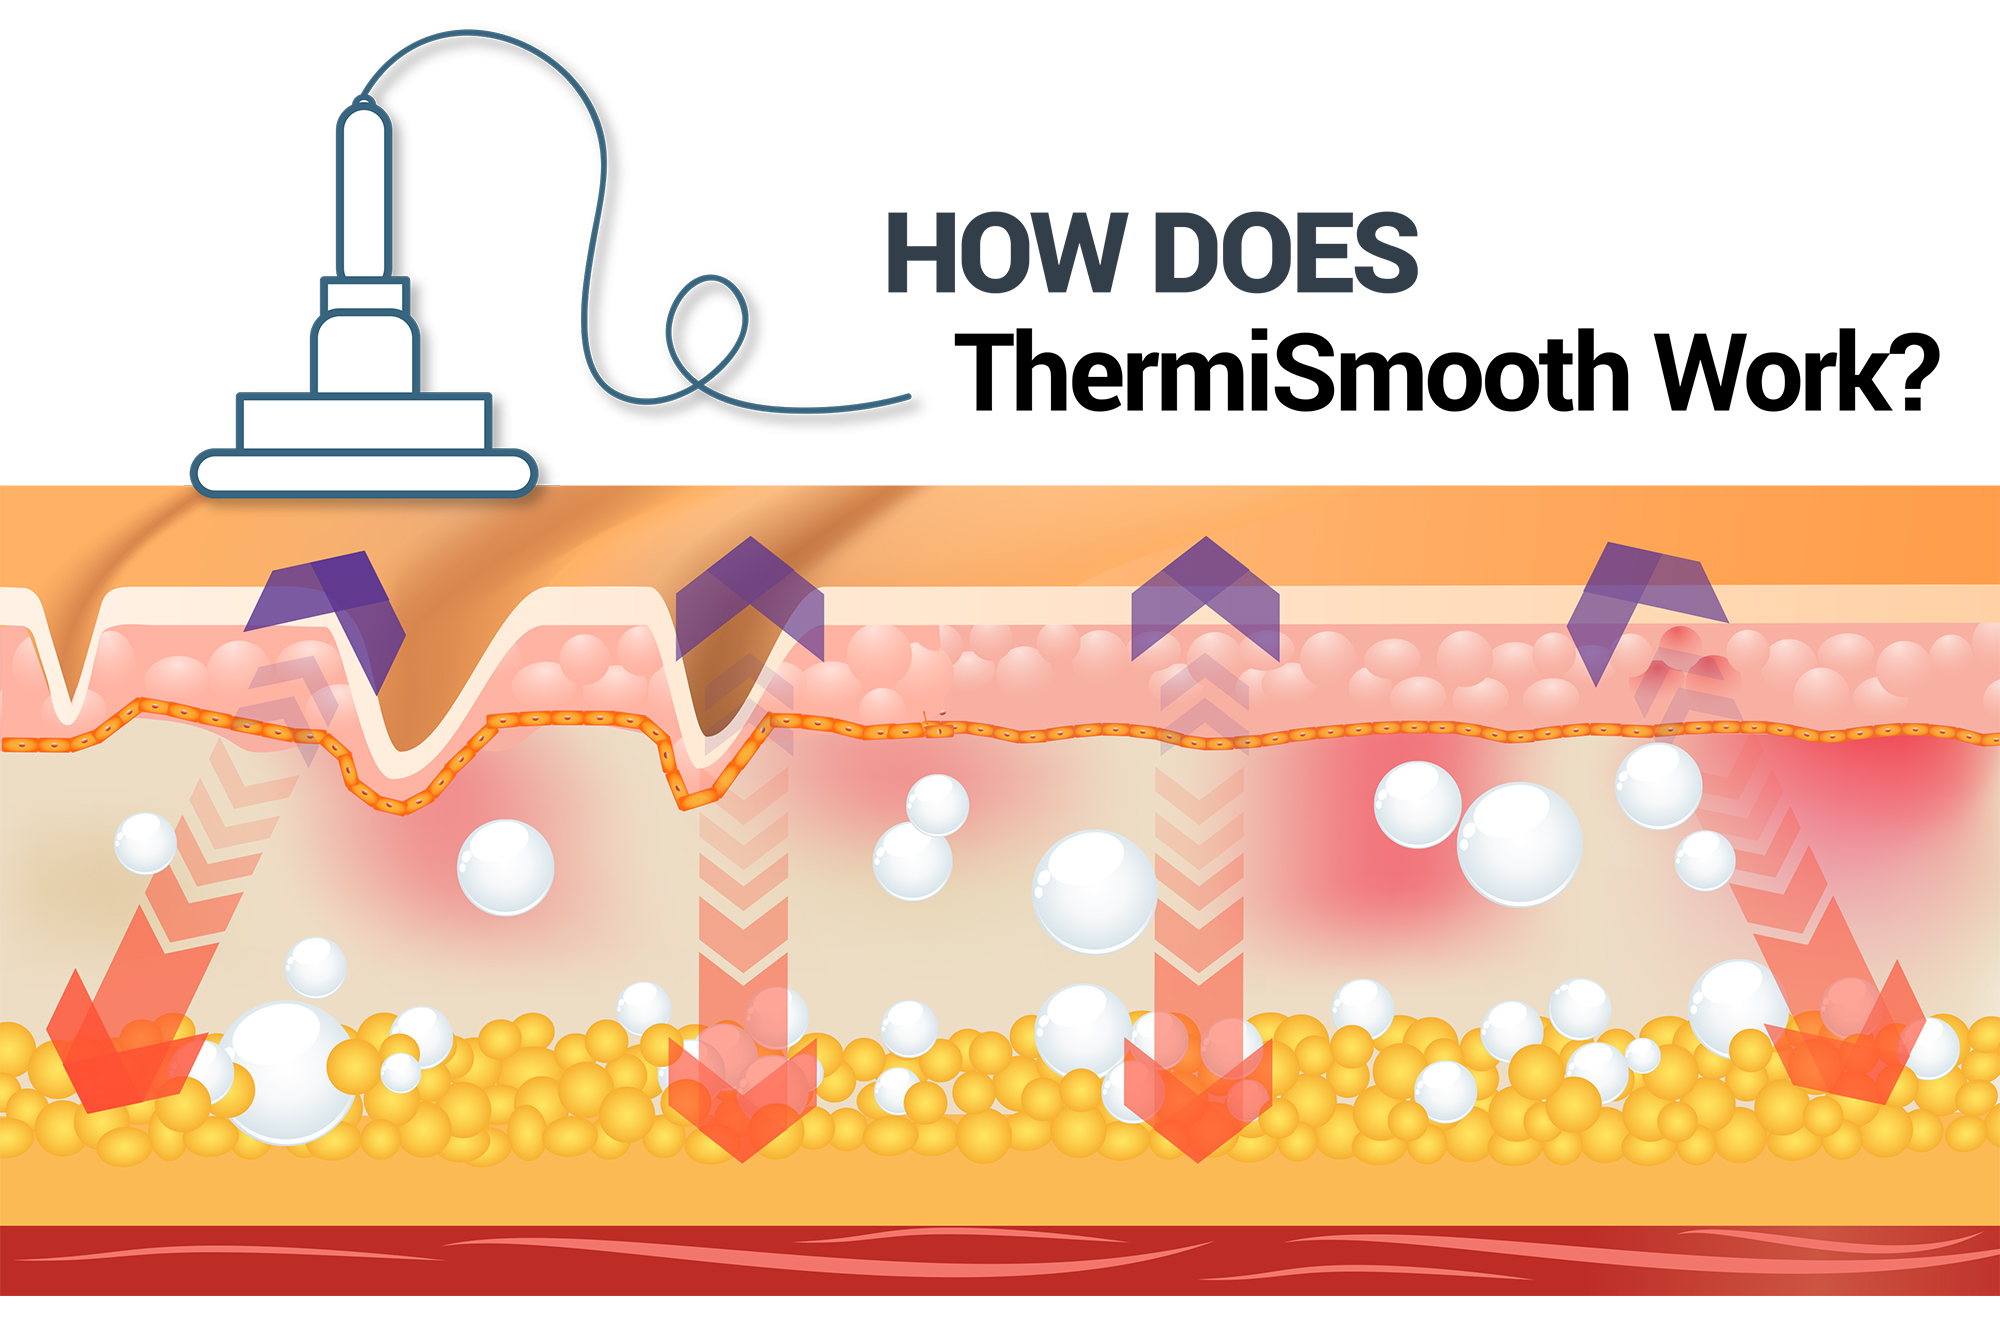 How Does ThermiSmooth Work